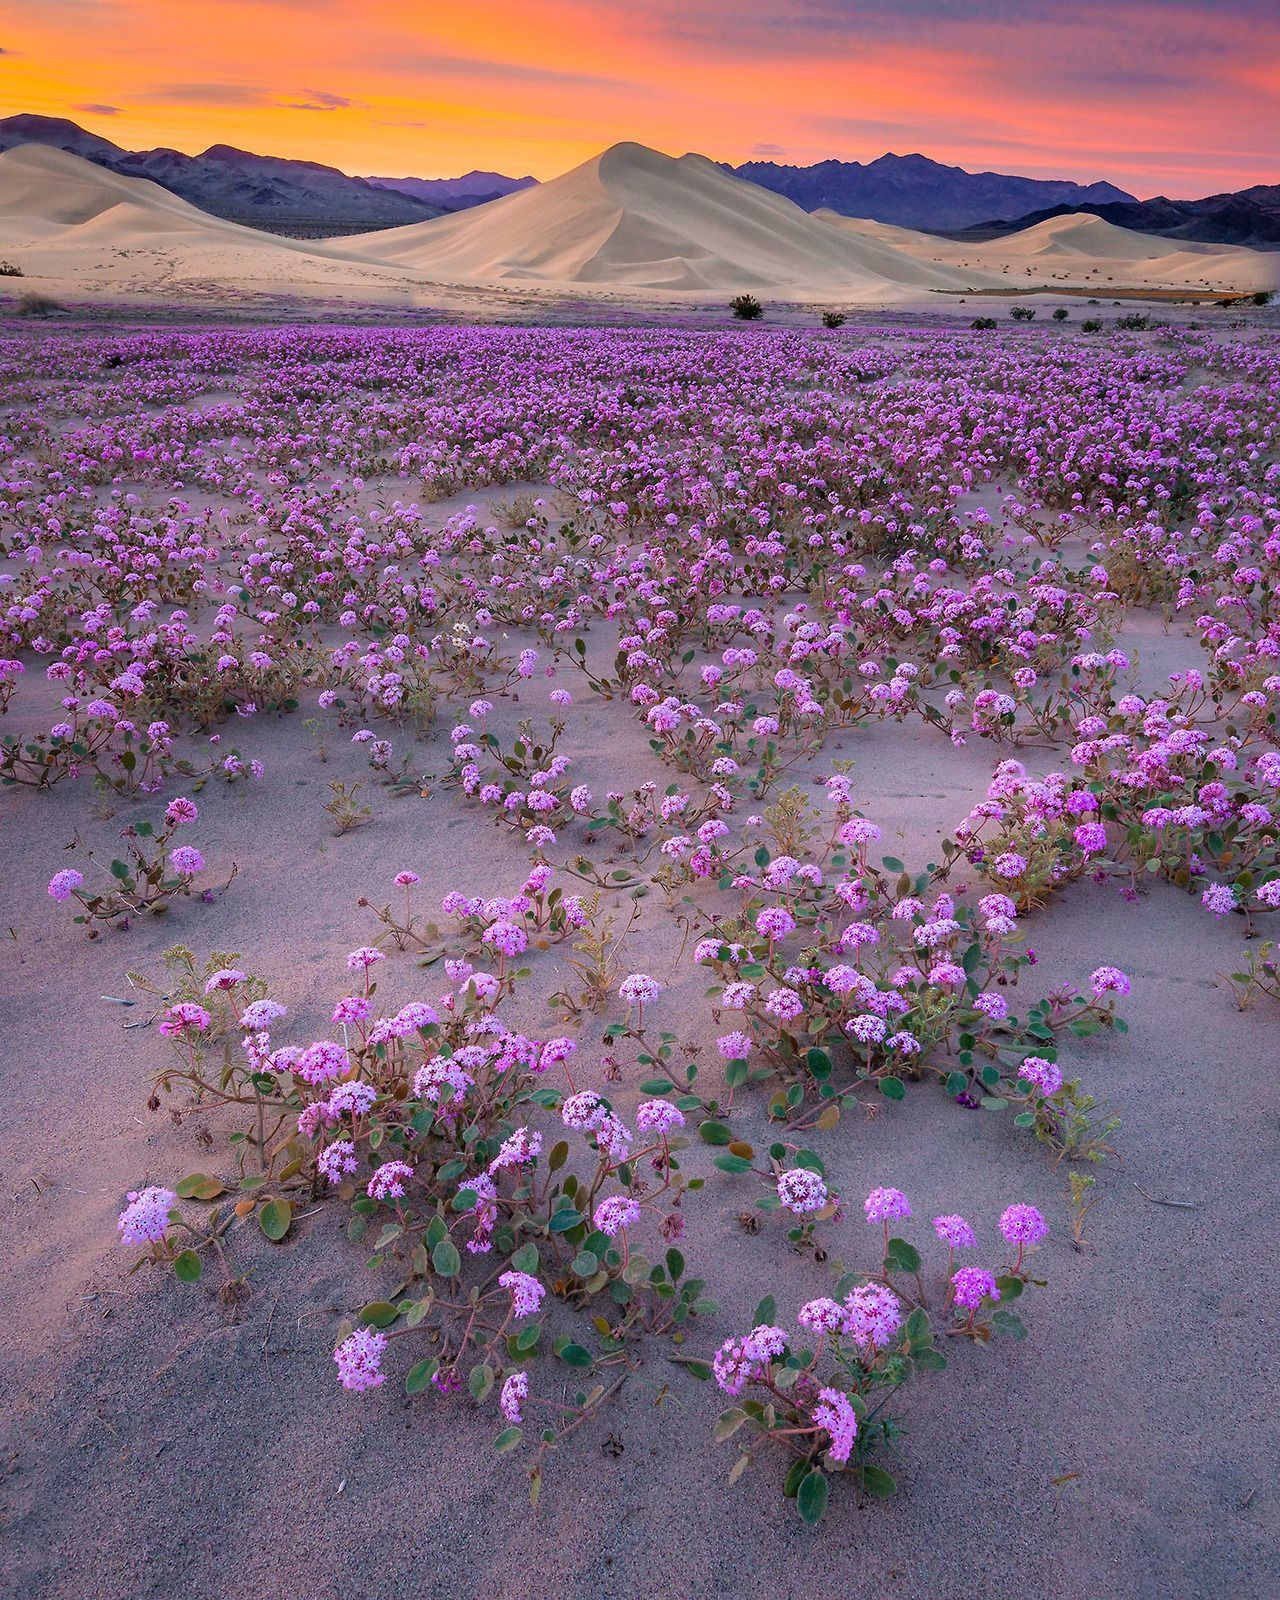 Americasgreatoutdoors death valley national park is famous for its americasgreatoutdoors death valley national park is famous for its spectacular spring wildflower displays mightylinksfo